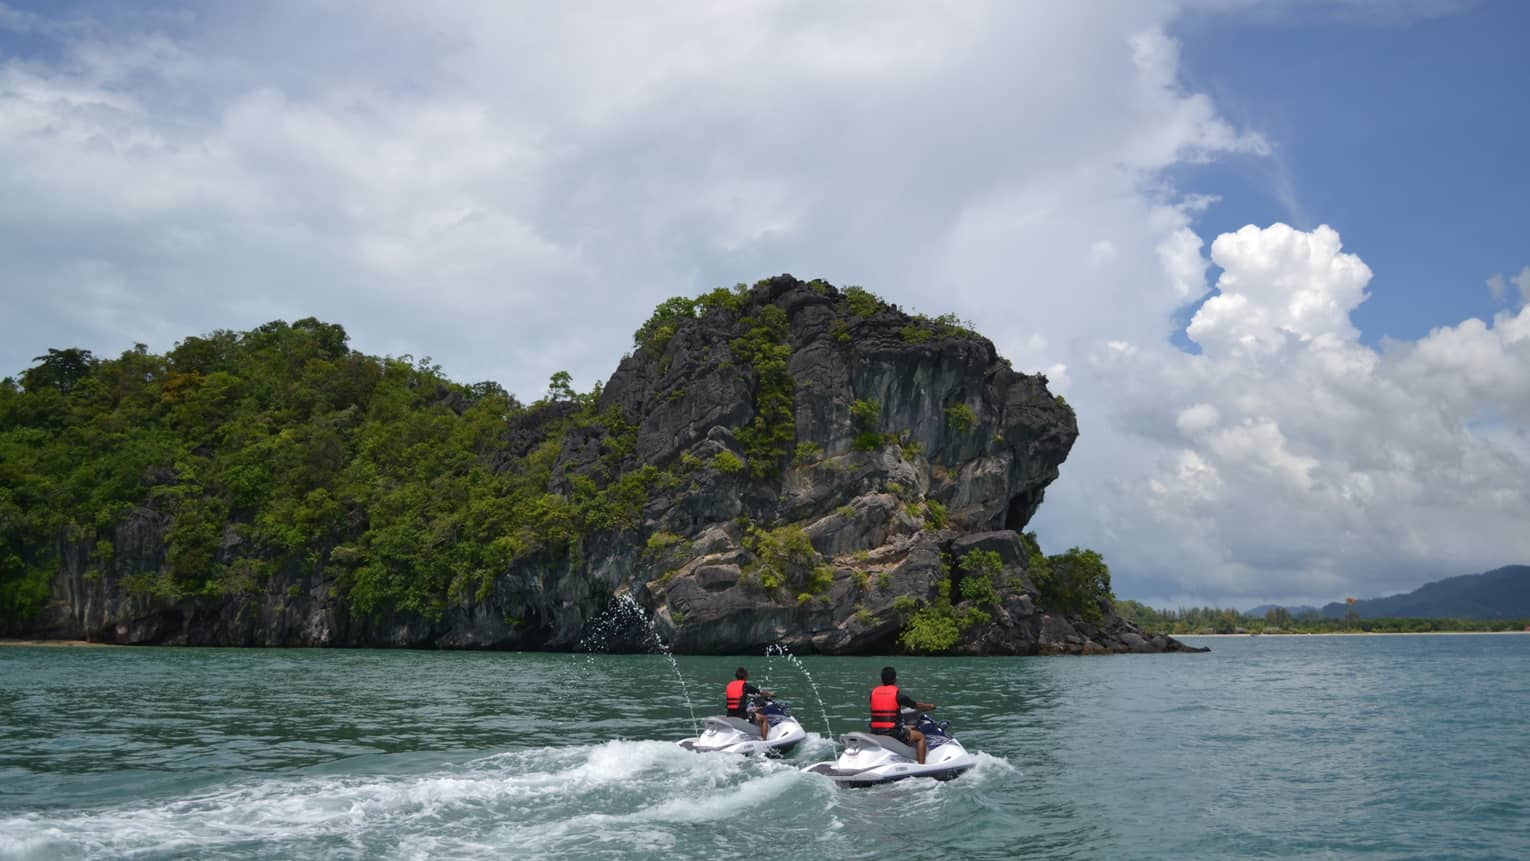 Two people wearing red life vests on jet skis ride on ocean under mountain